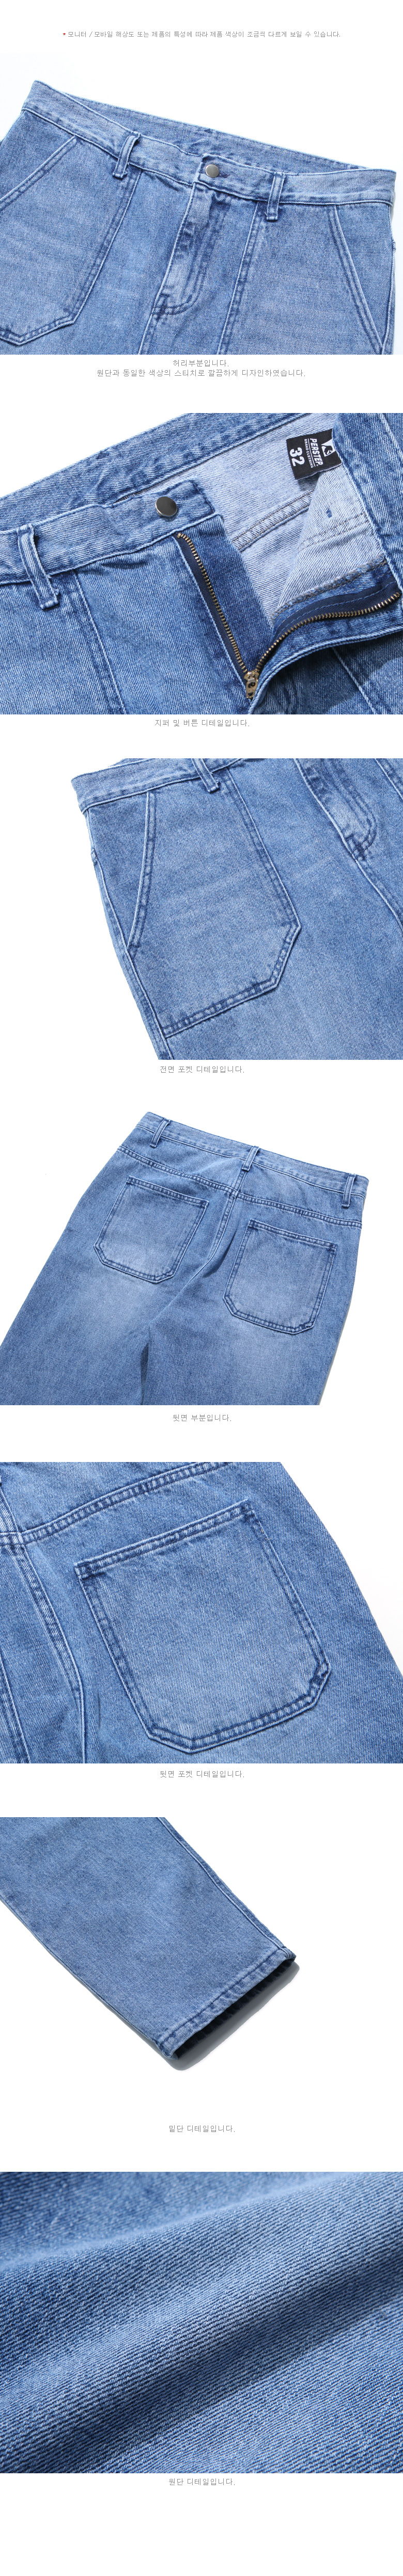 20190131_ps_complete_pant_blue_uk_02.jpg